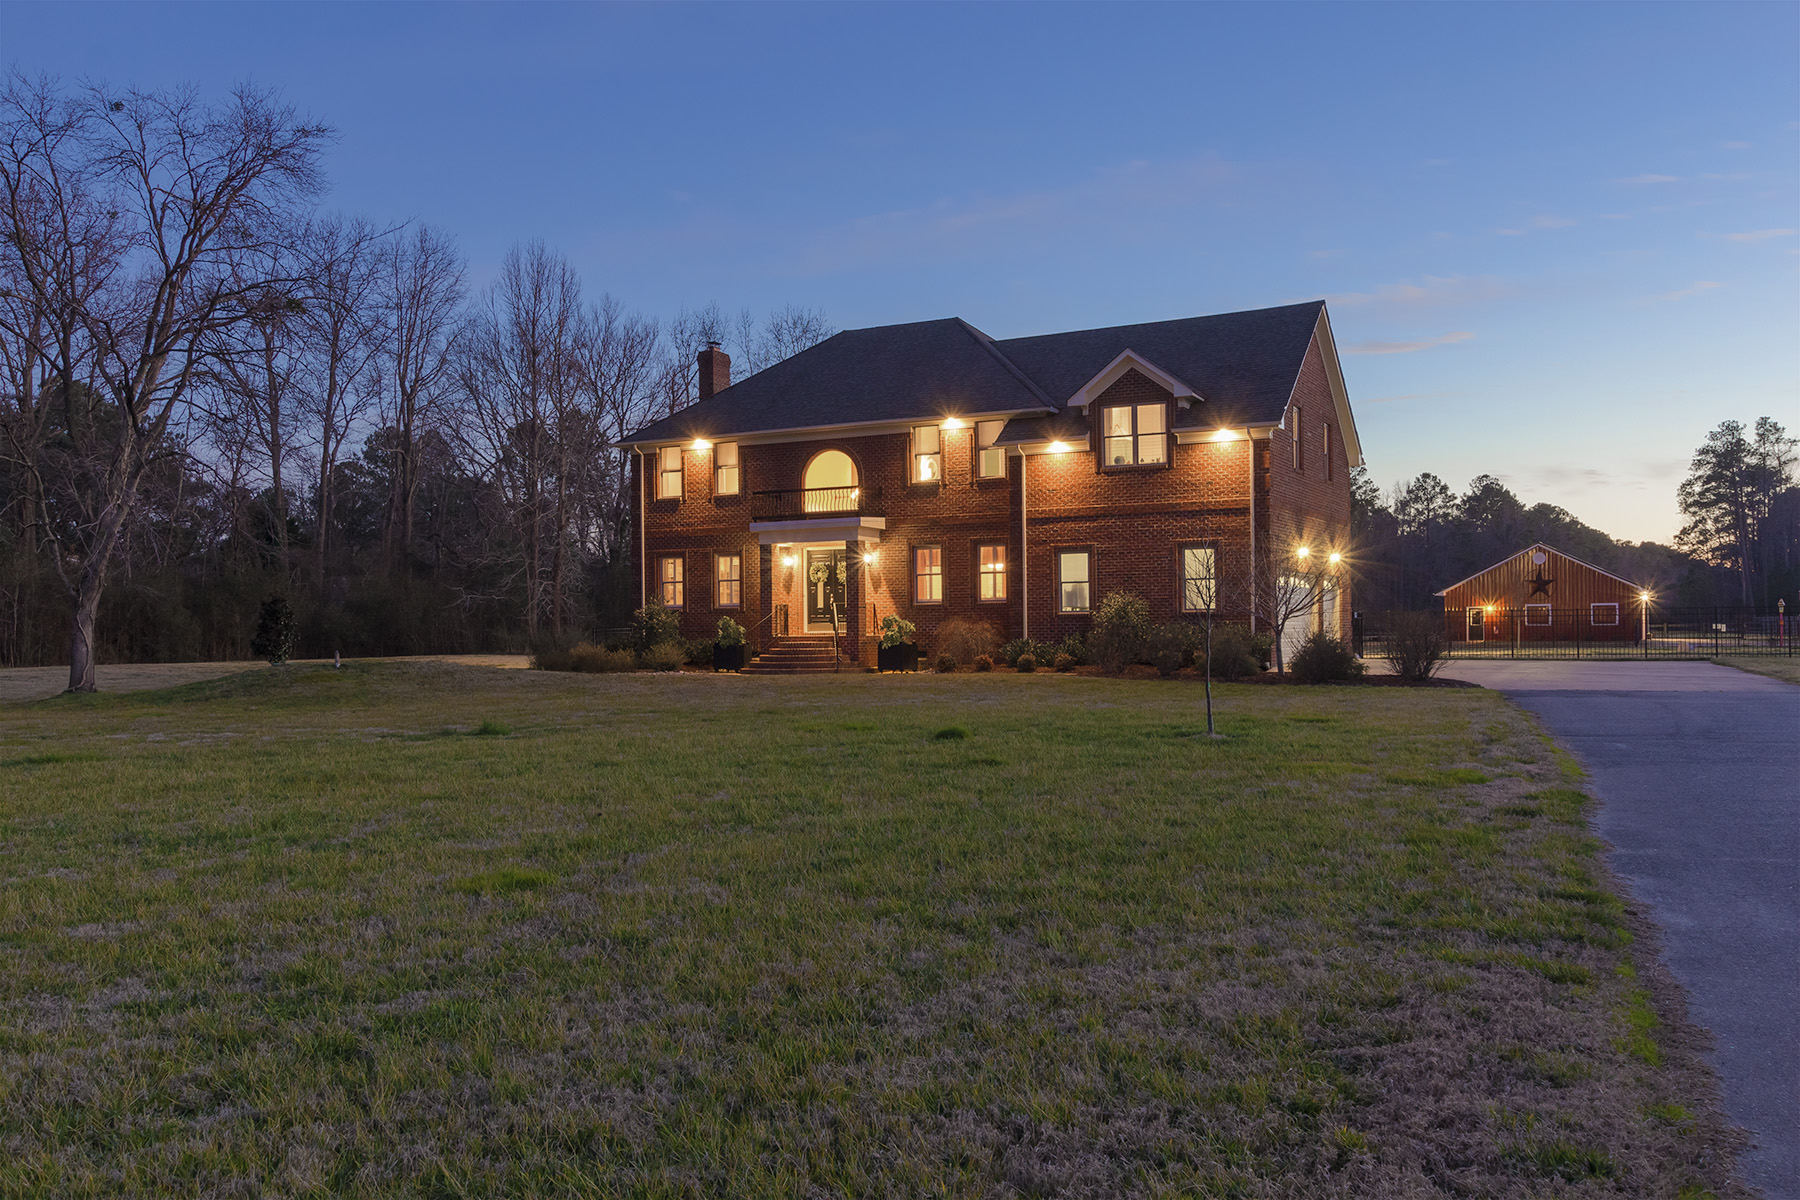 Single Family Home for Sale at Blackwater 628 Blackwater Rd. Chesapeake, Virginia 23322 United States